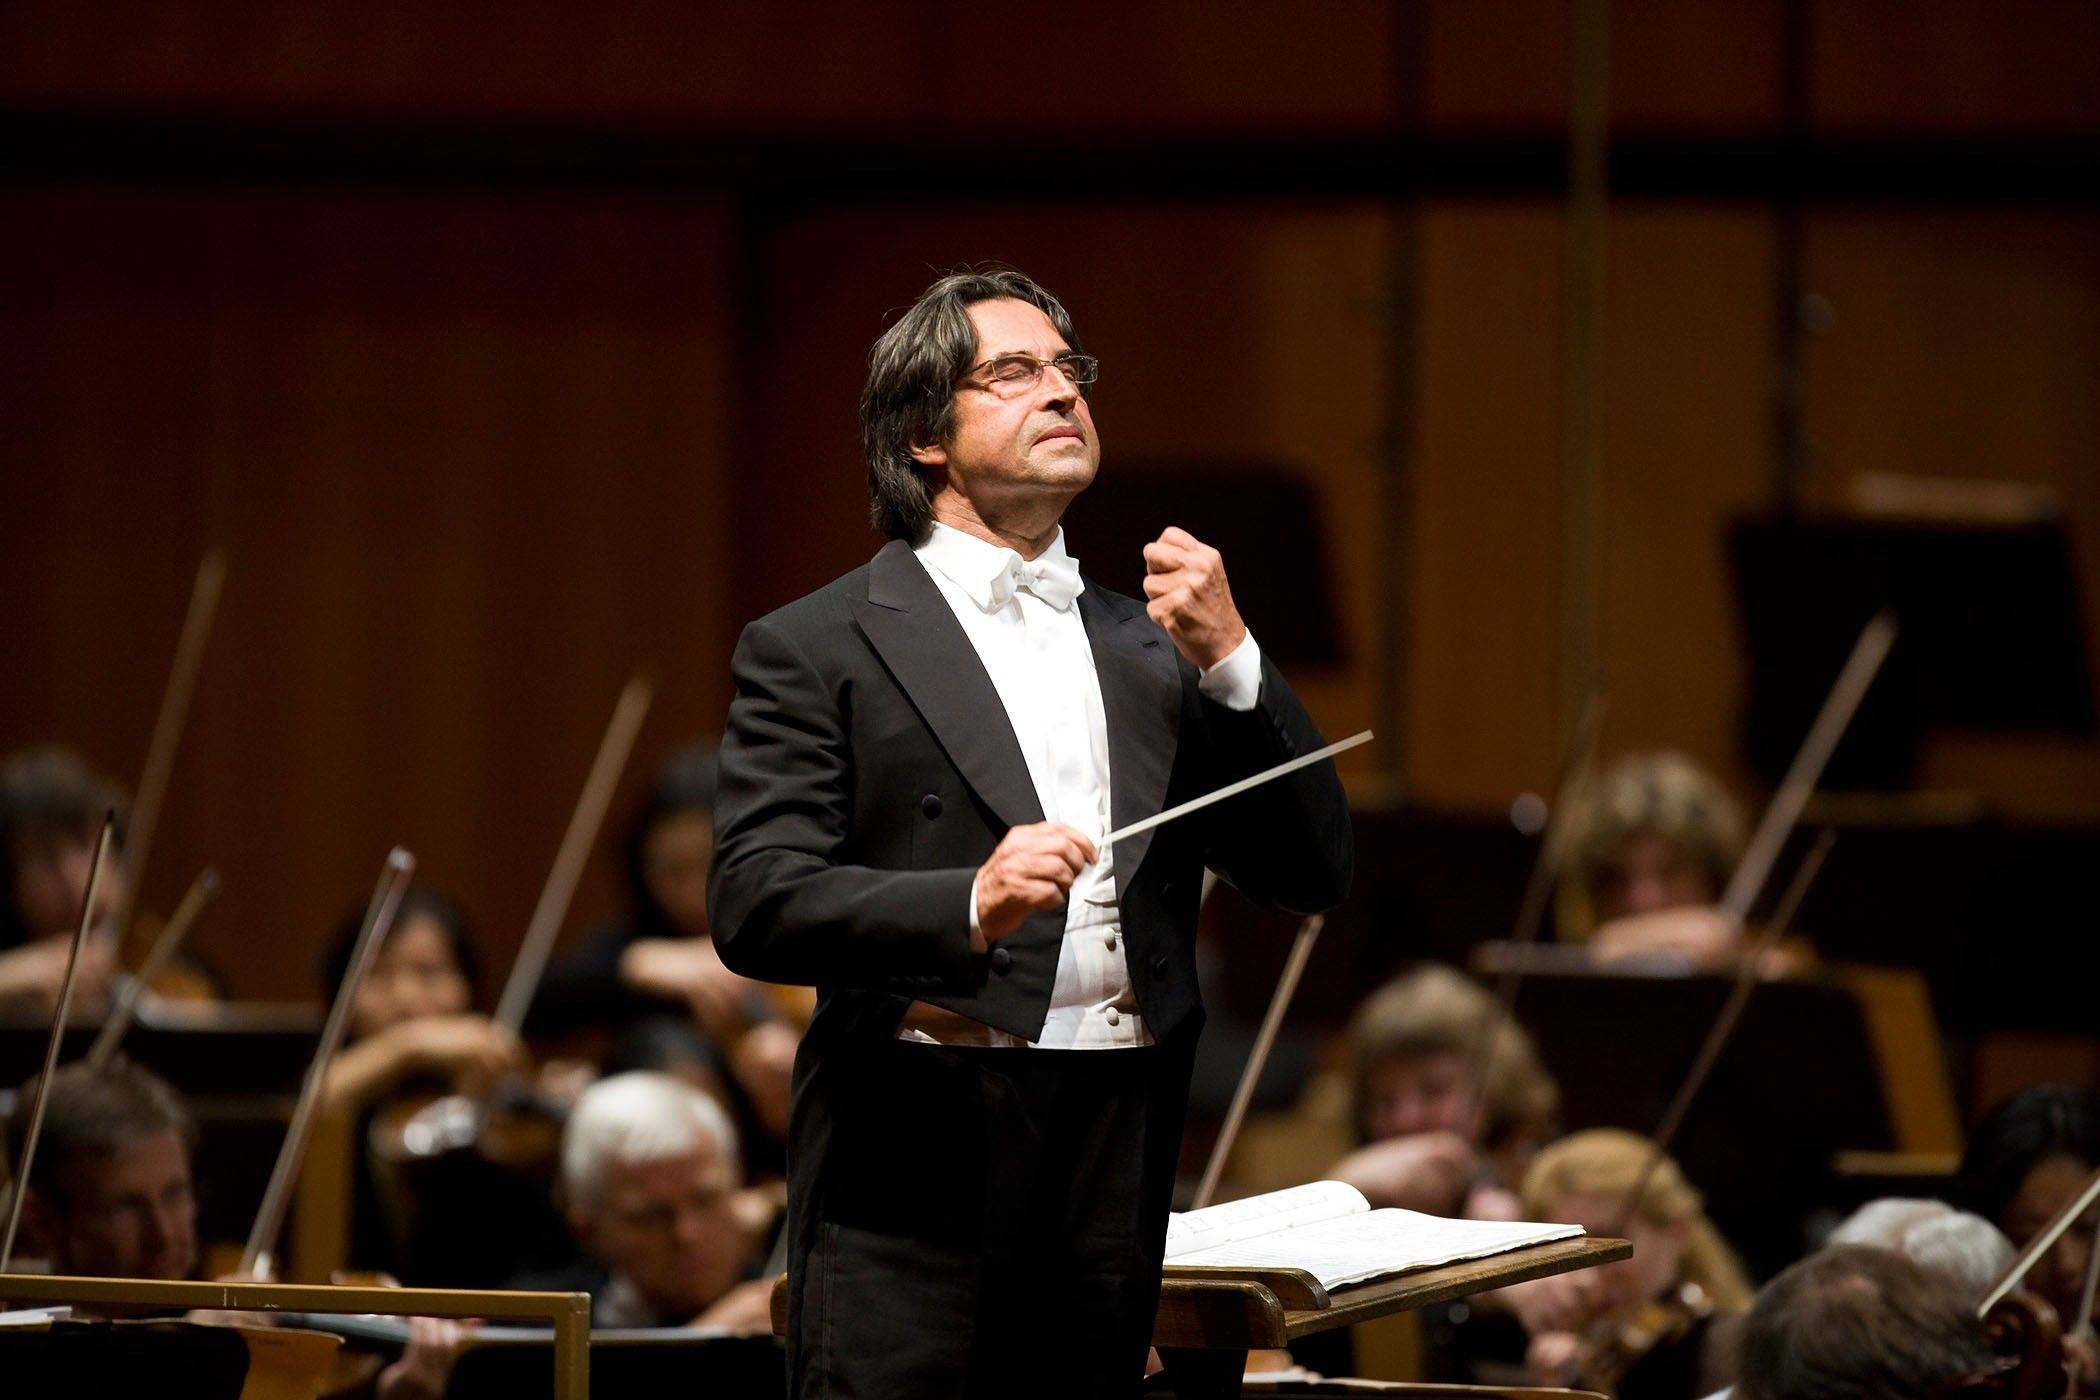 Riccardo Muti's debut recording with the Chicago Symphony Orchestra was a classical highlight of 2010.